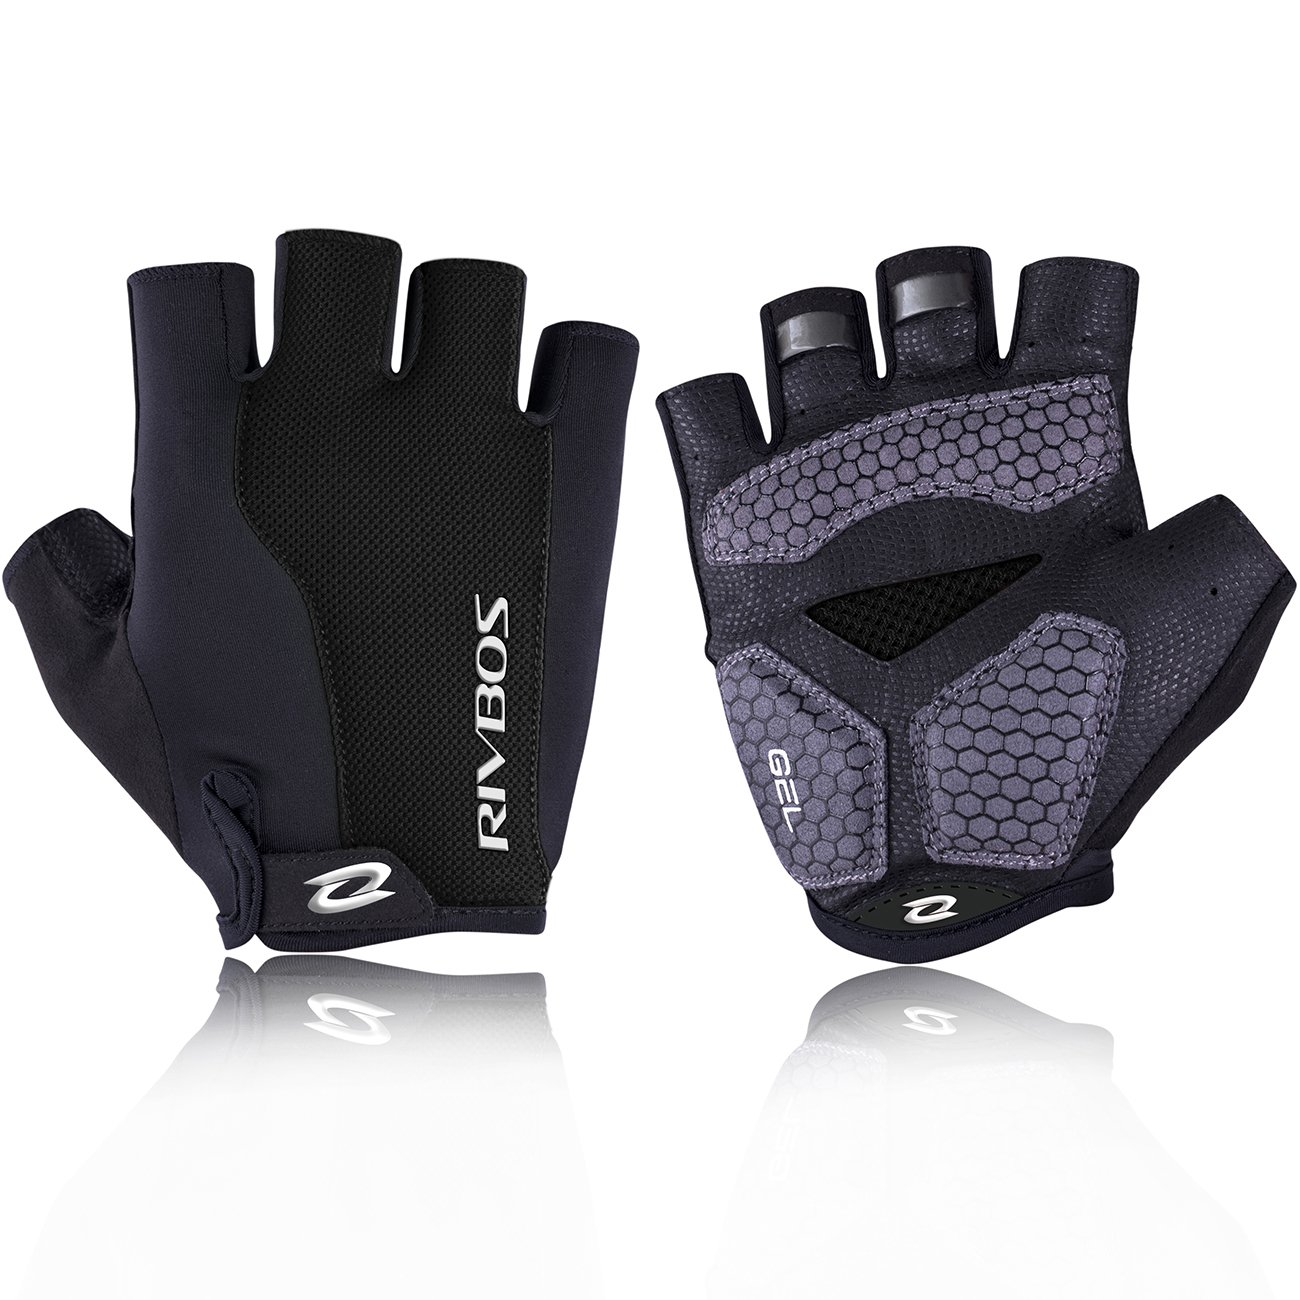 RIVBOS Bike Gloves Cycling Gloves Fingerless for Men Women with Foam Padding Breathable Mesh Fashion Design for Motorcycle Bicycle Mountain Riding Driving Sports Outdoors Exercise CHG001